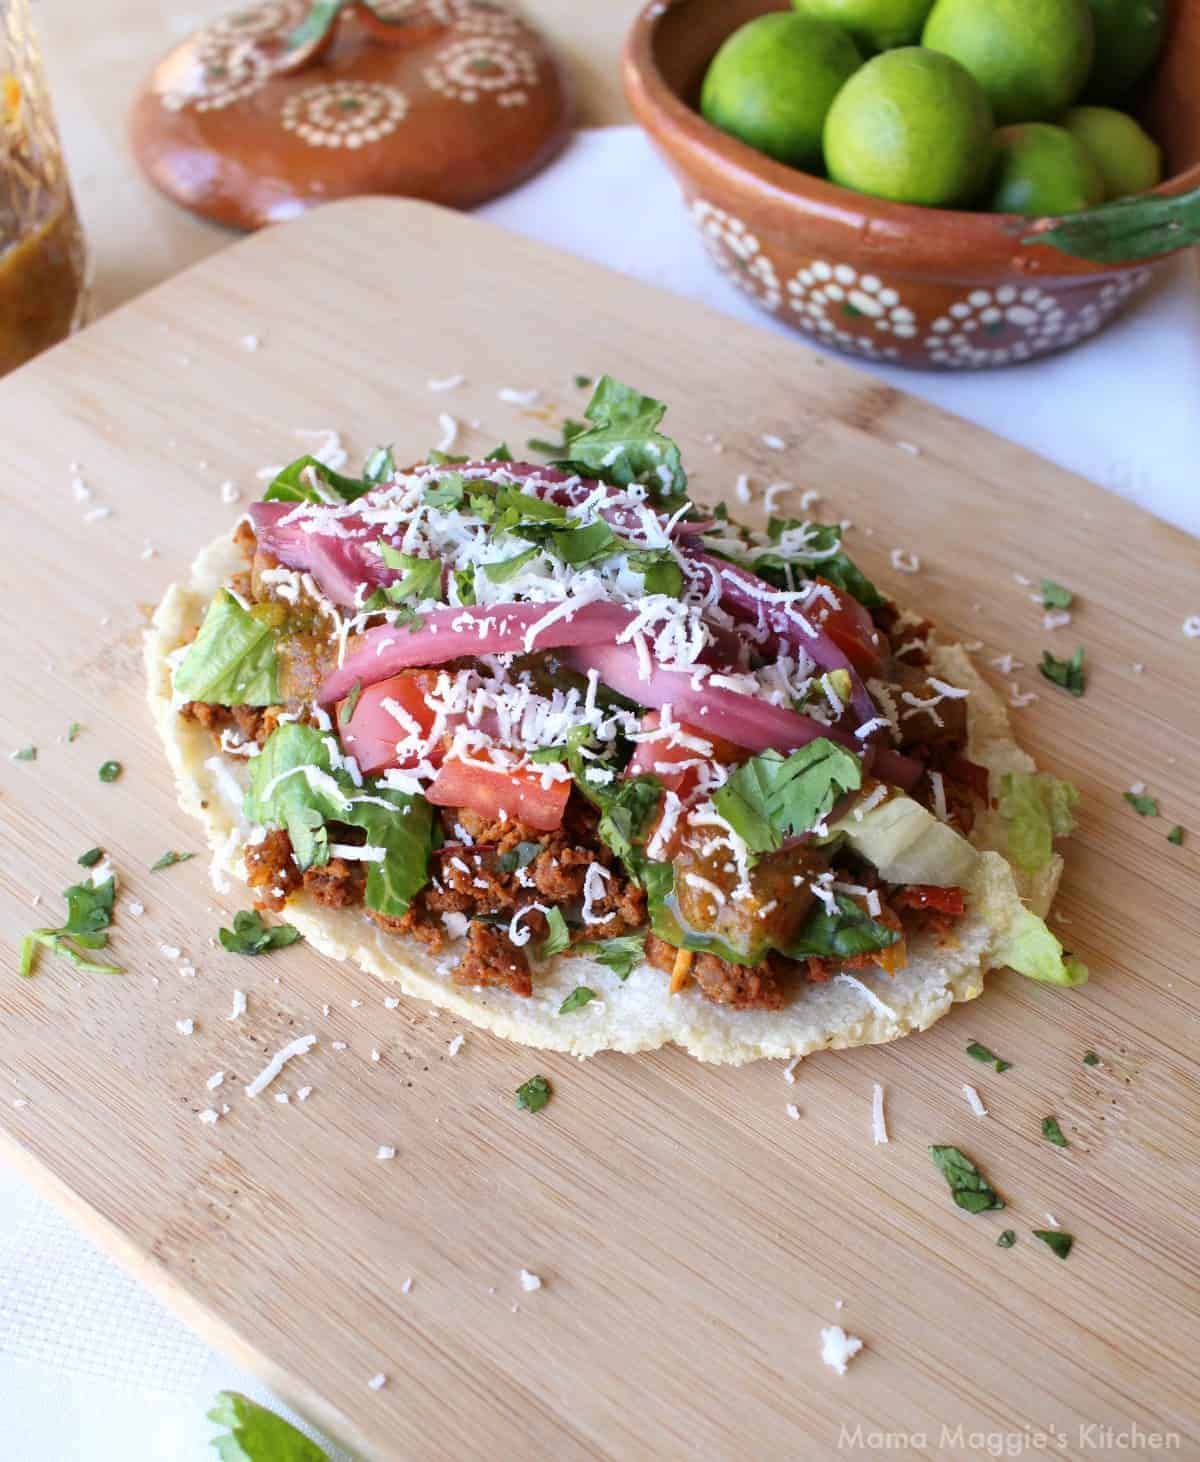 A huarache on a wooden cutting board and topped with meat, lettuce, tomatoes, and cheese.